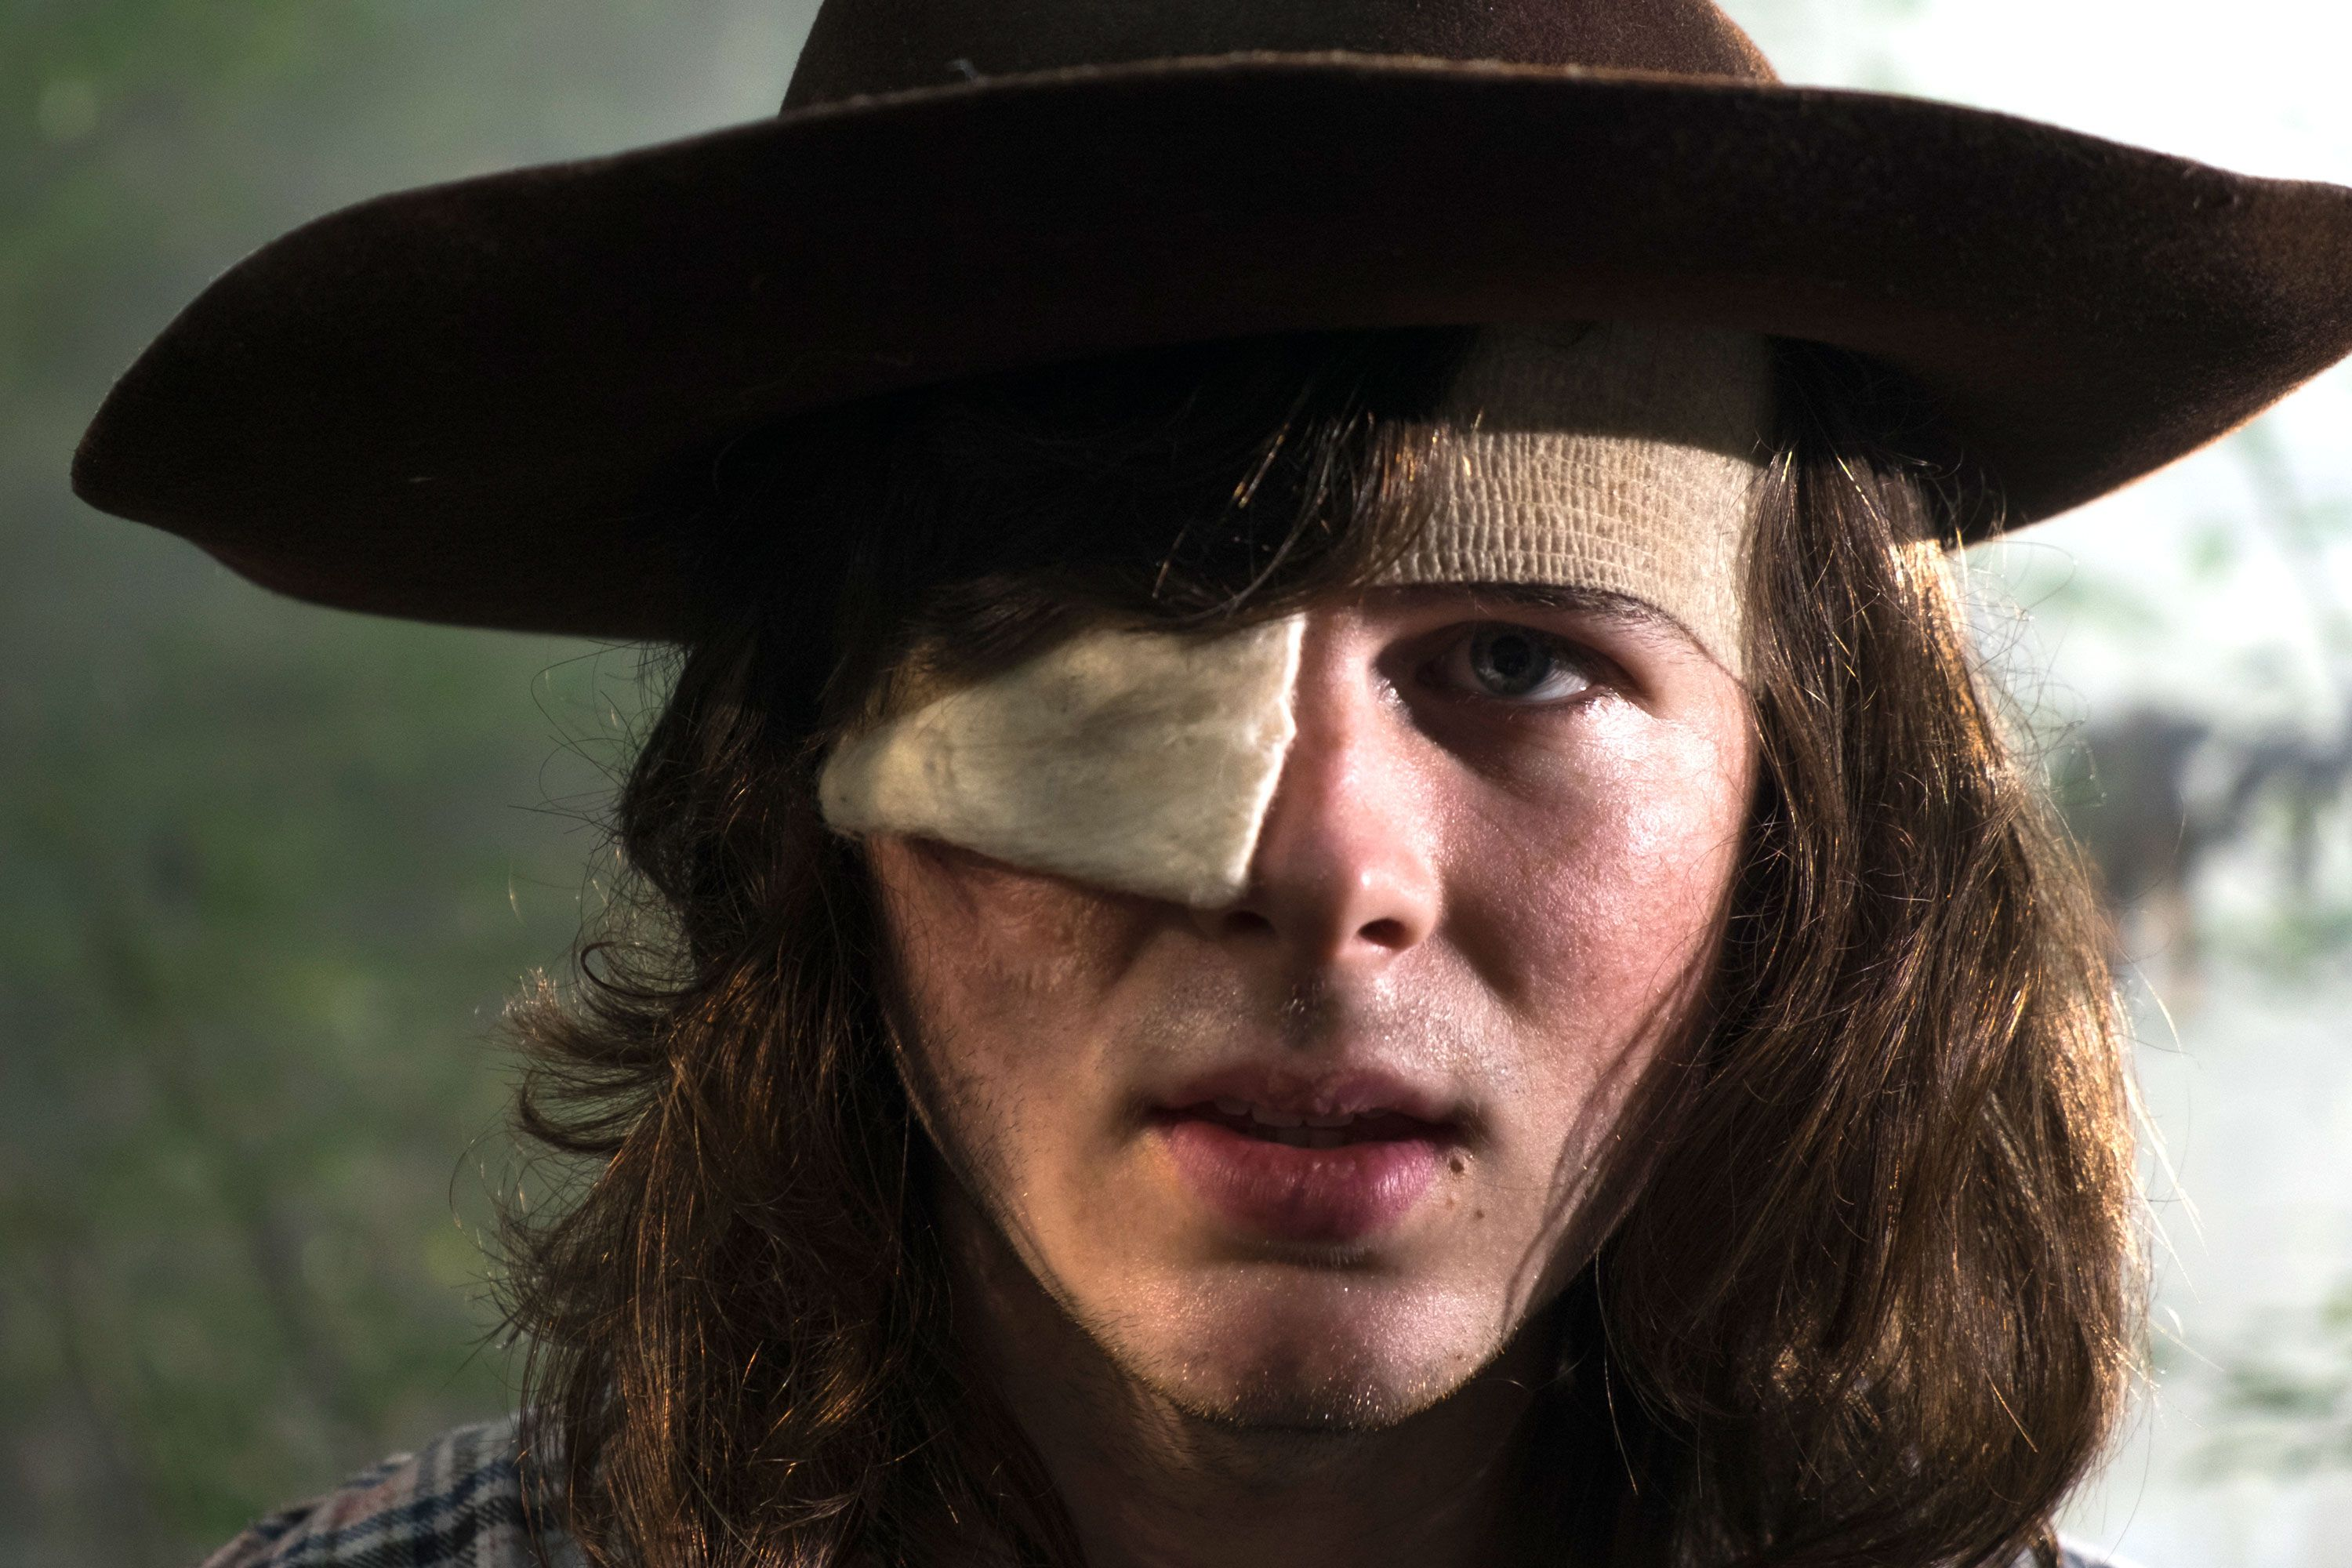 Former Walking Dead star Chandler Riggs responds to if he would appear in Rick Grimes movie